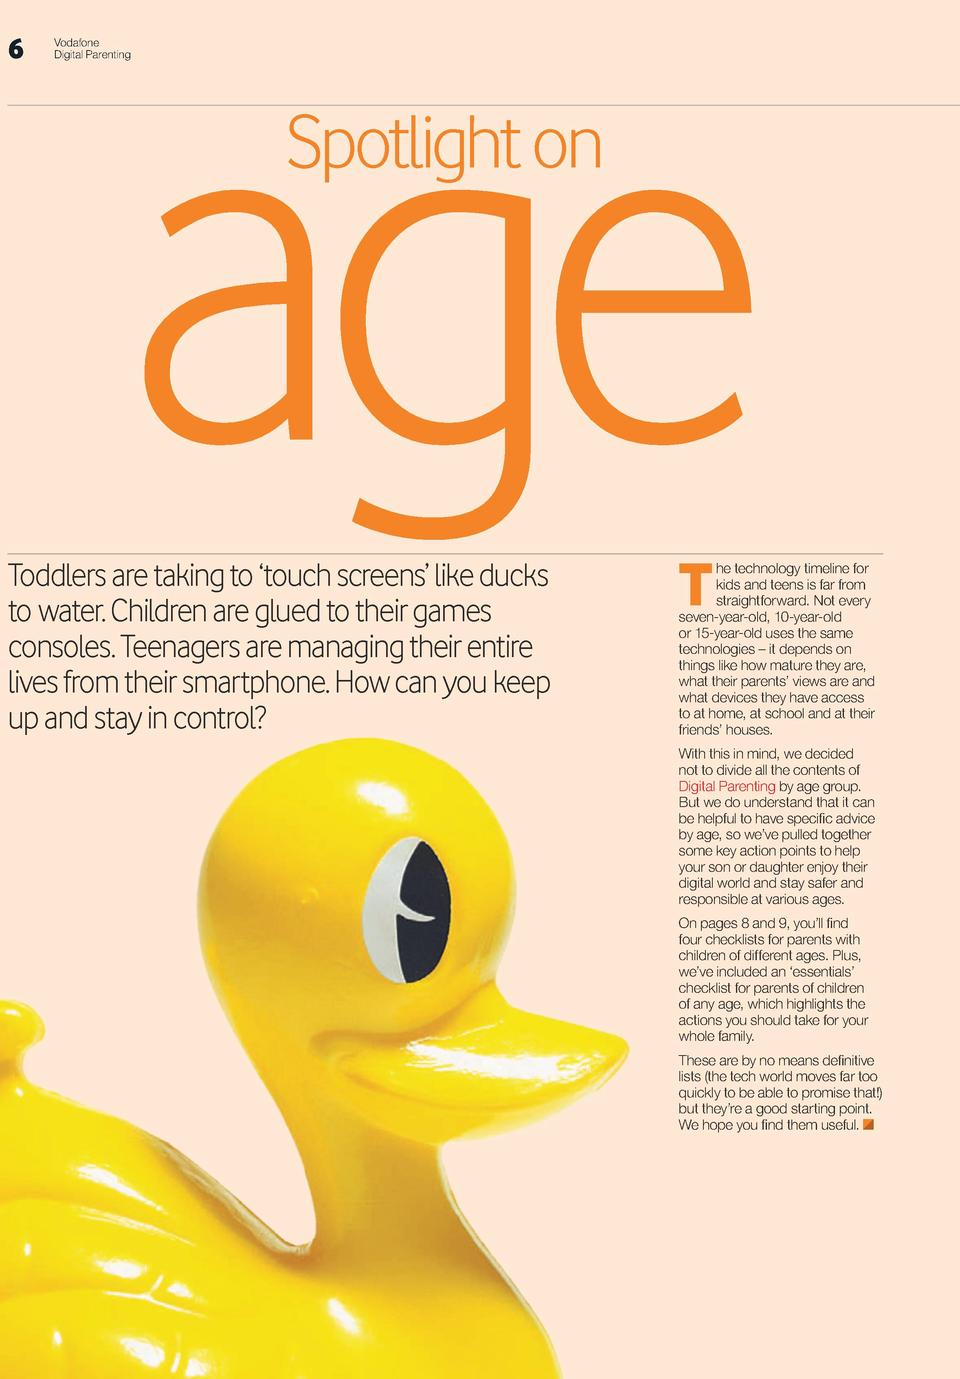 6  age   Vodafone Digital Parenting  Spotlight on  Toddlers are taking to    touch screens    like ducks to  water. Childr...